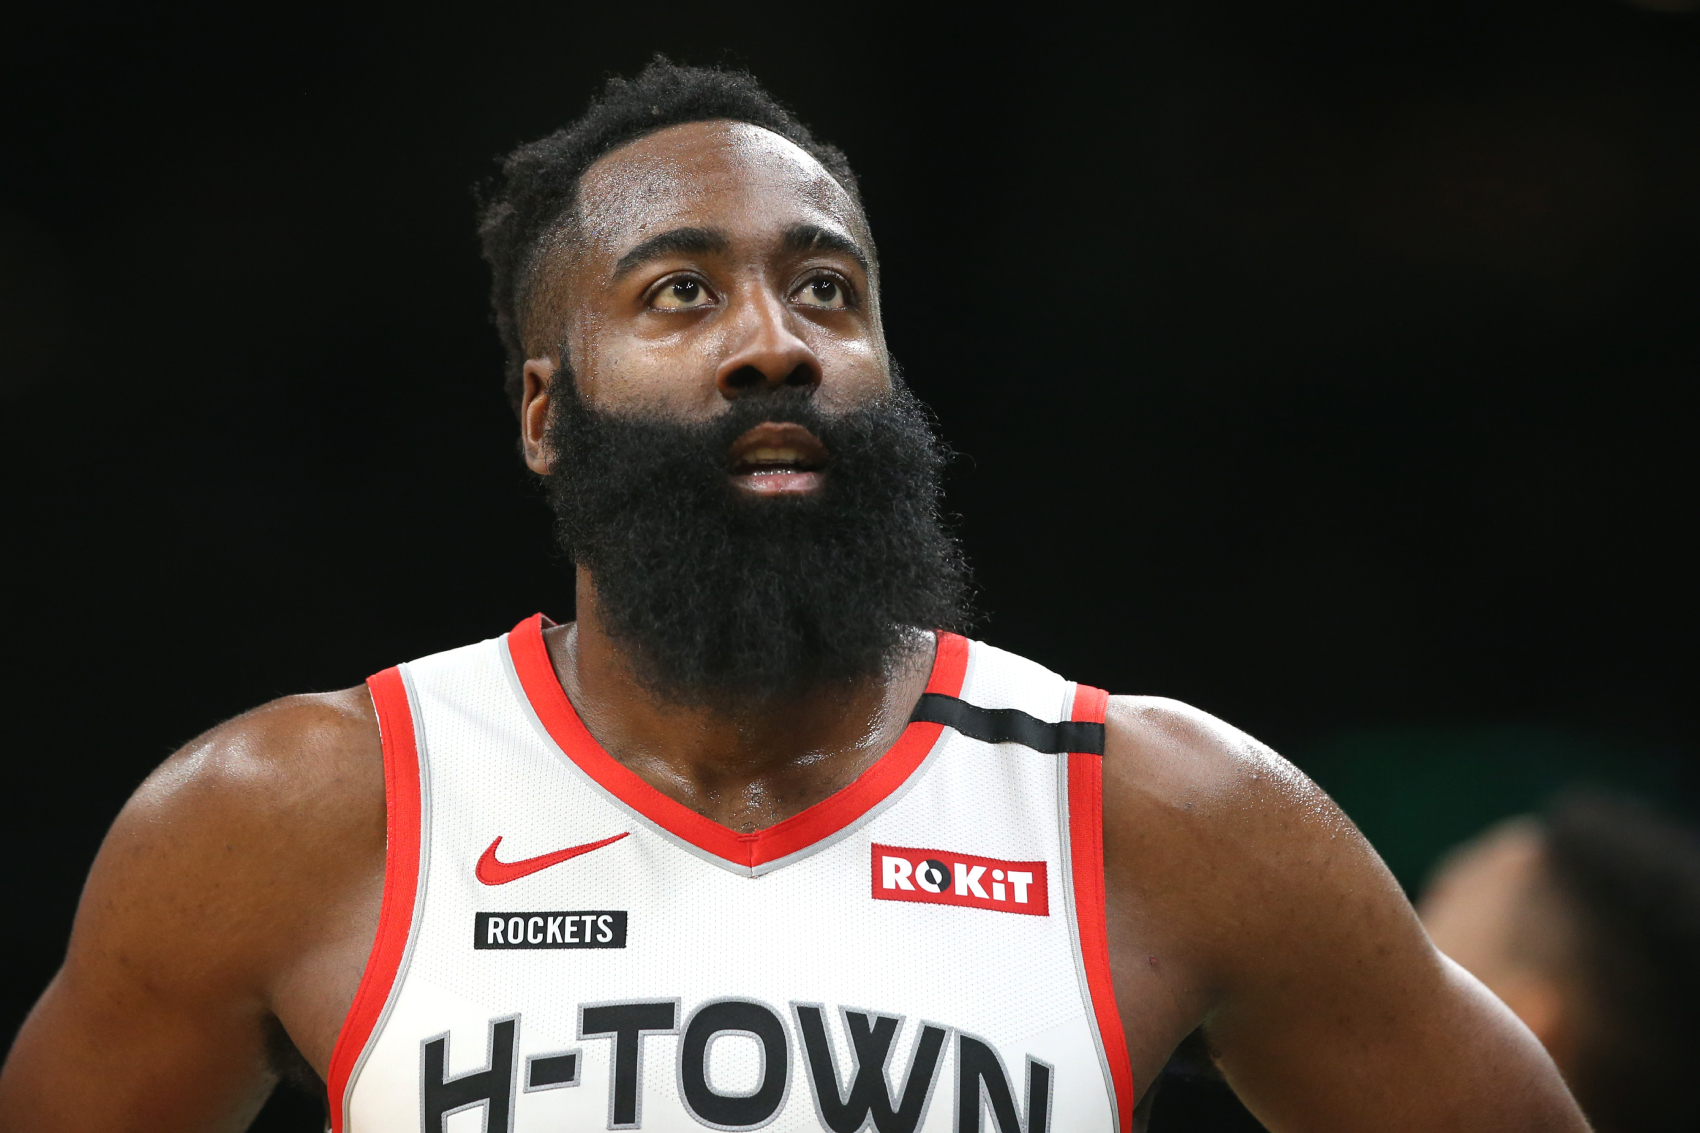 James Harden reportedly wants to go to the Brooklyn Nets. However, the Houston Rockets just gave Harden a big reason to stay in Houston.